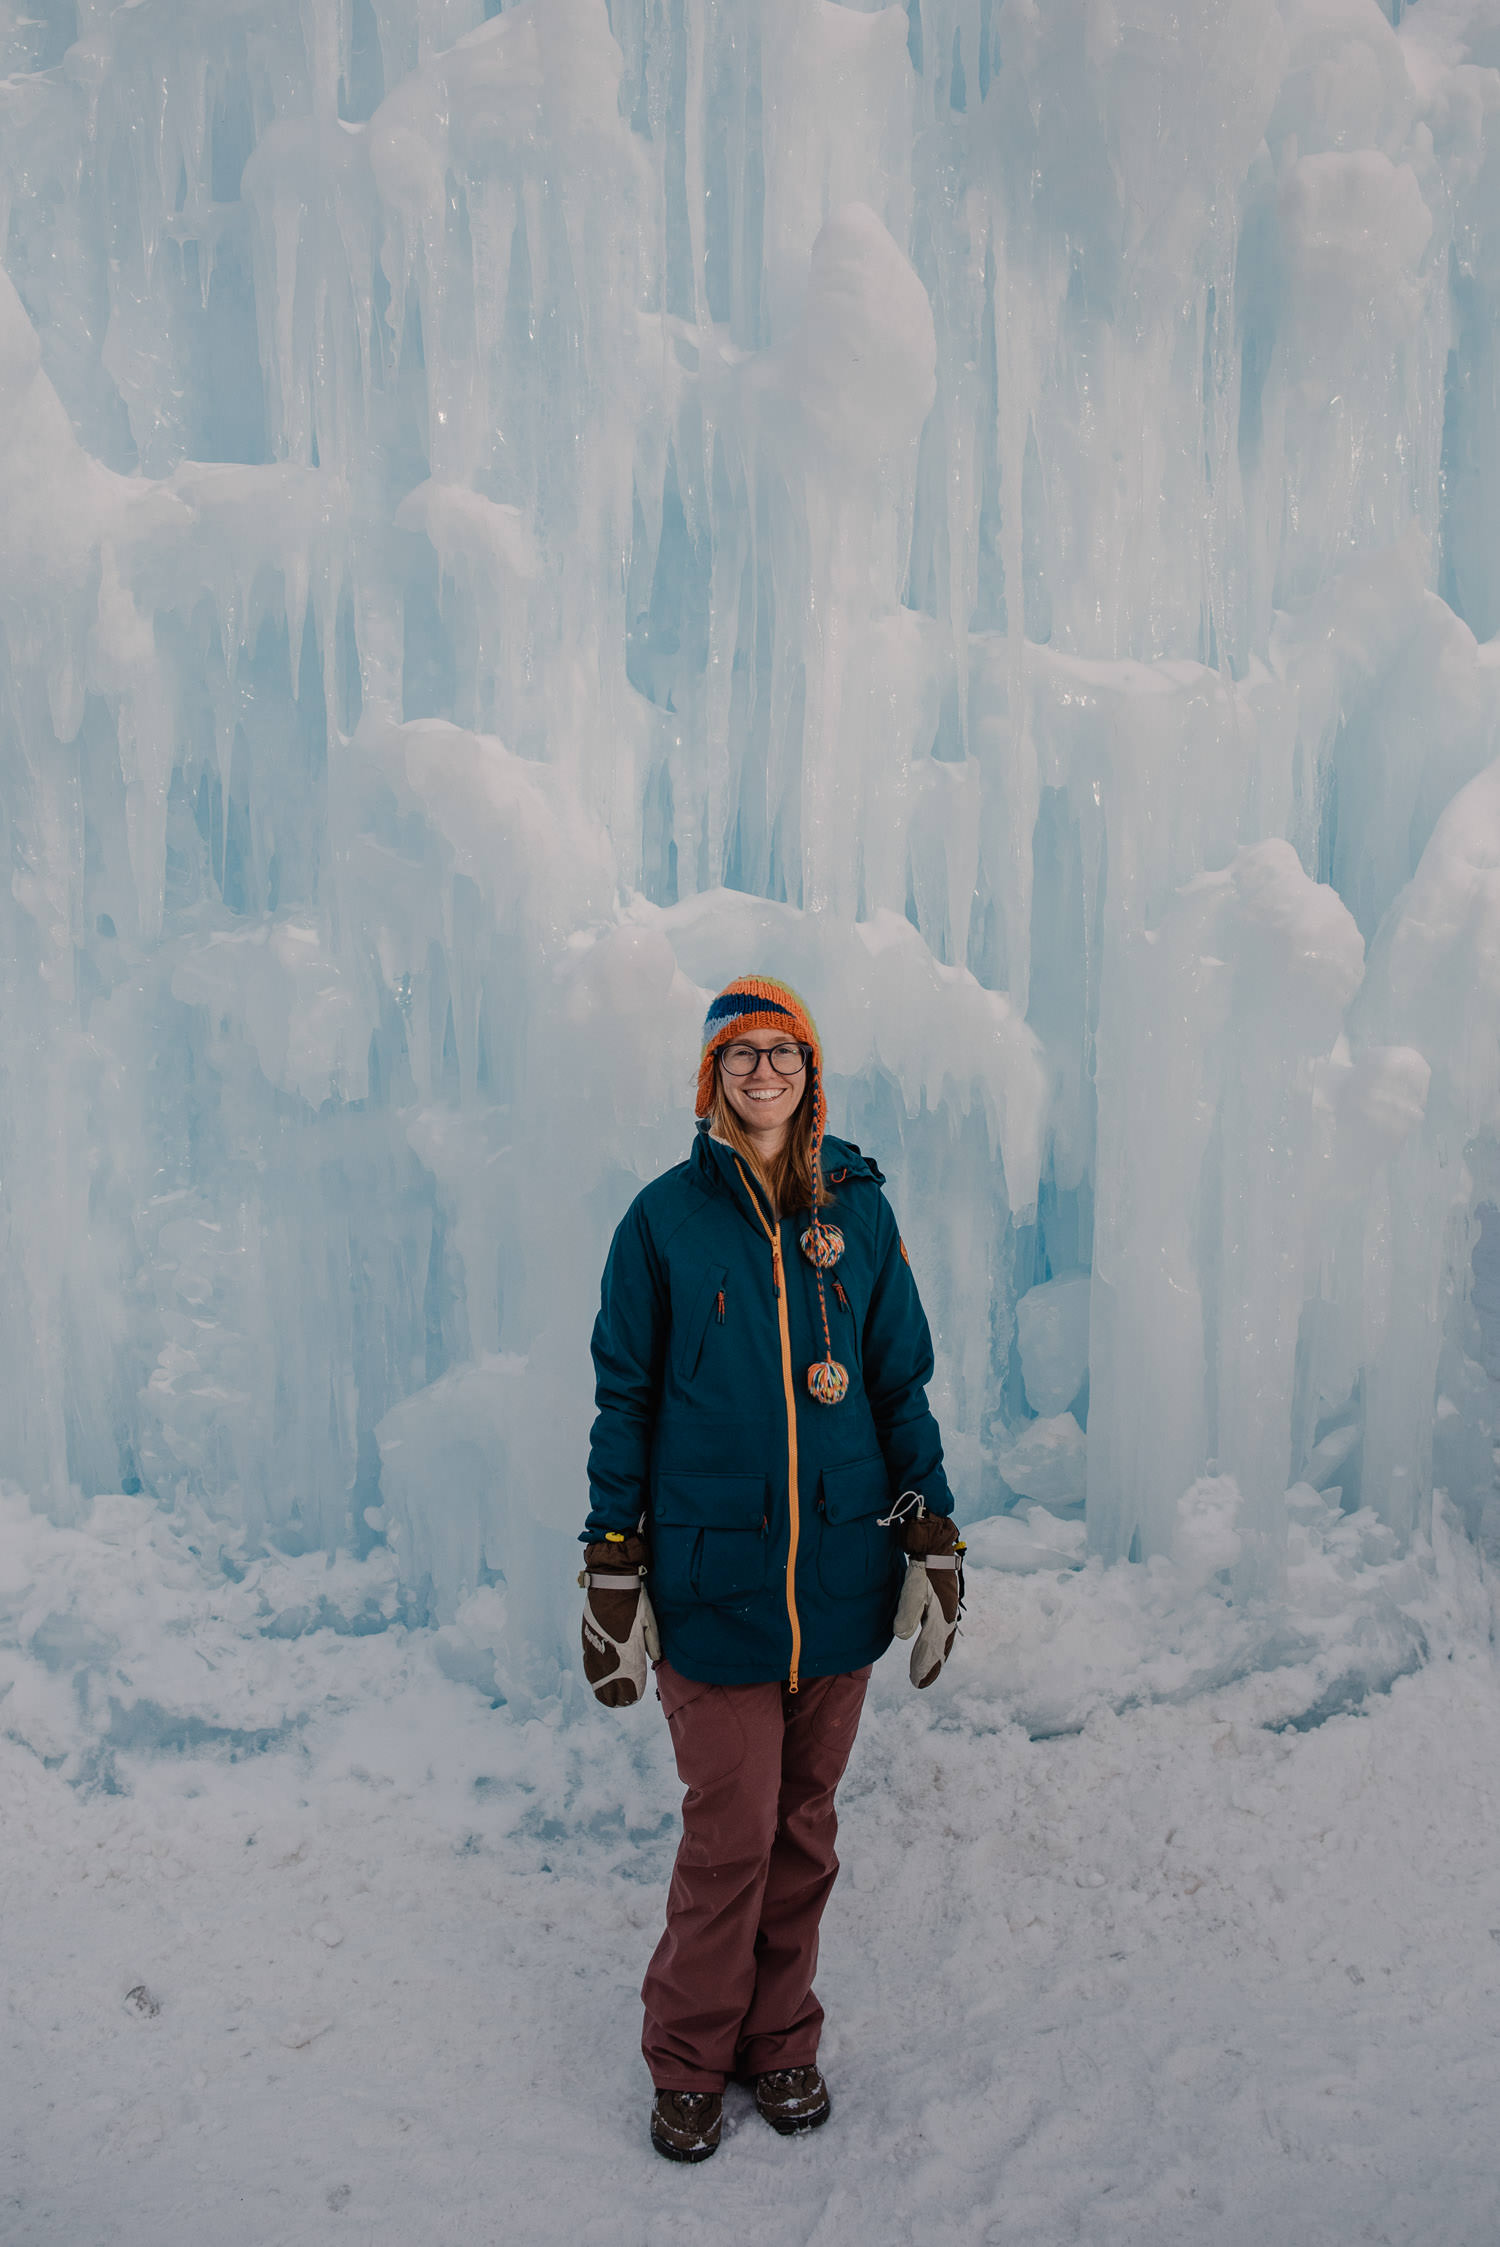 Emmy in Ice castles wearing snow gear